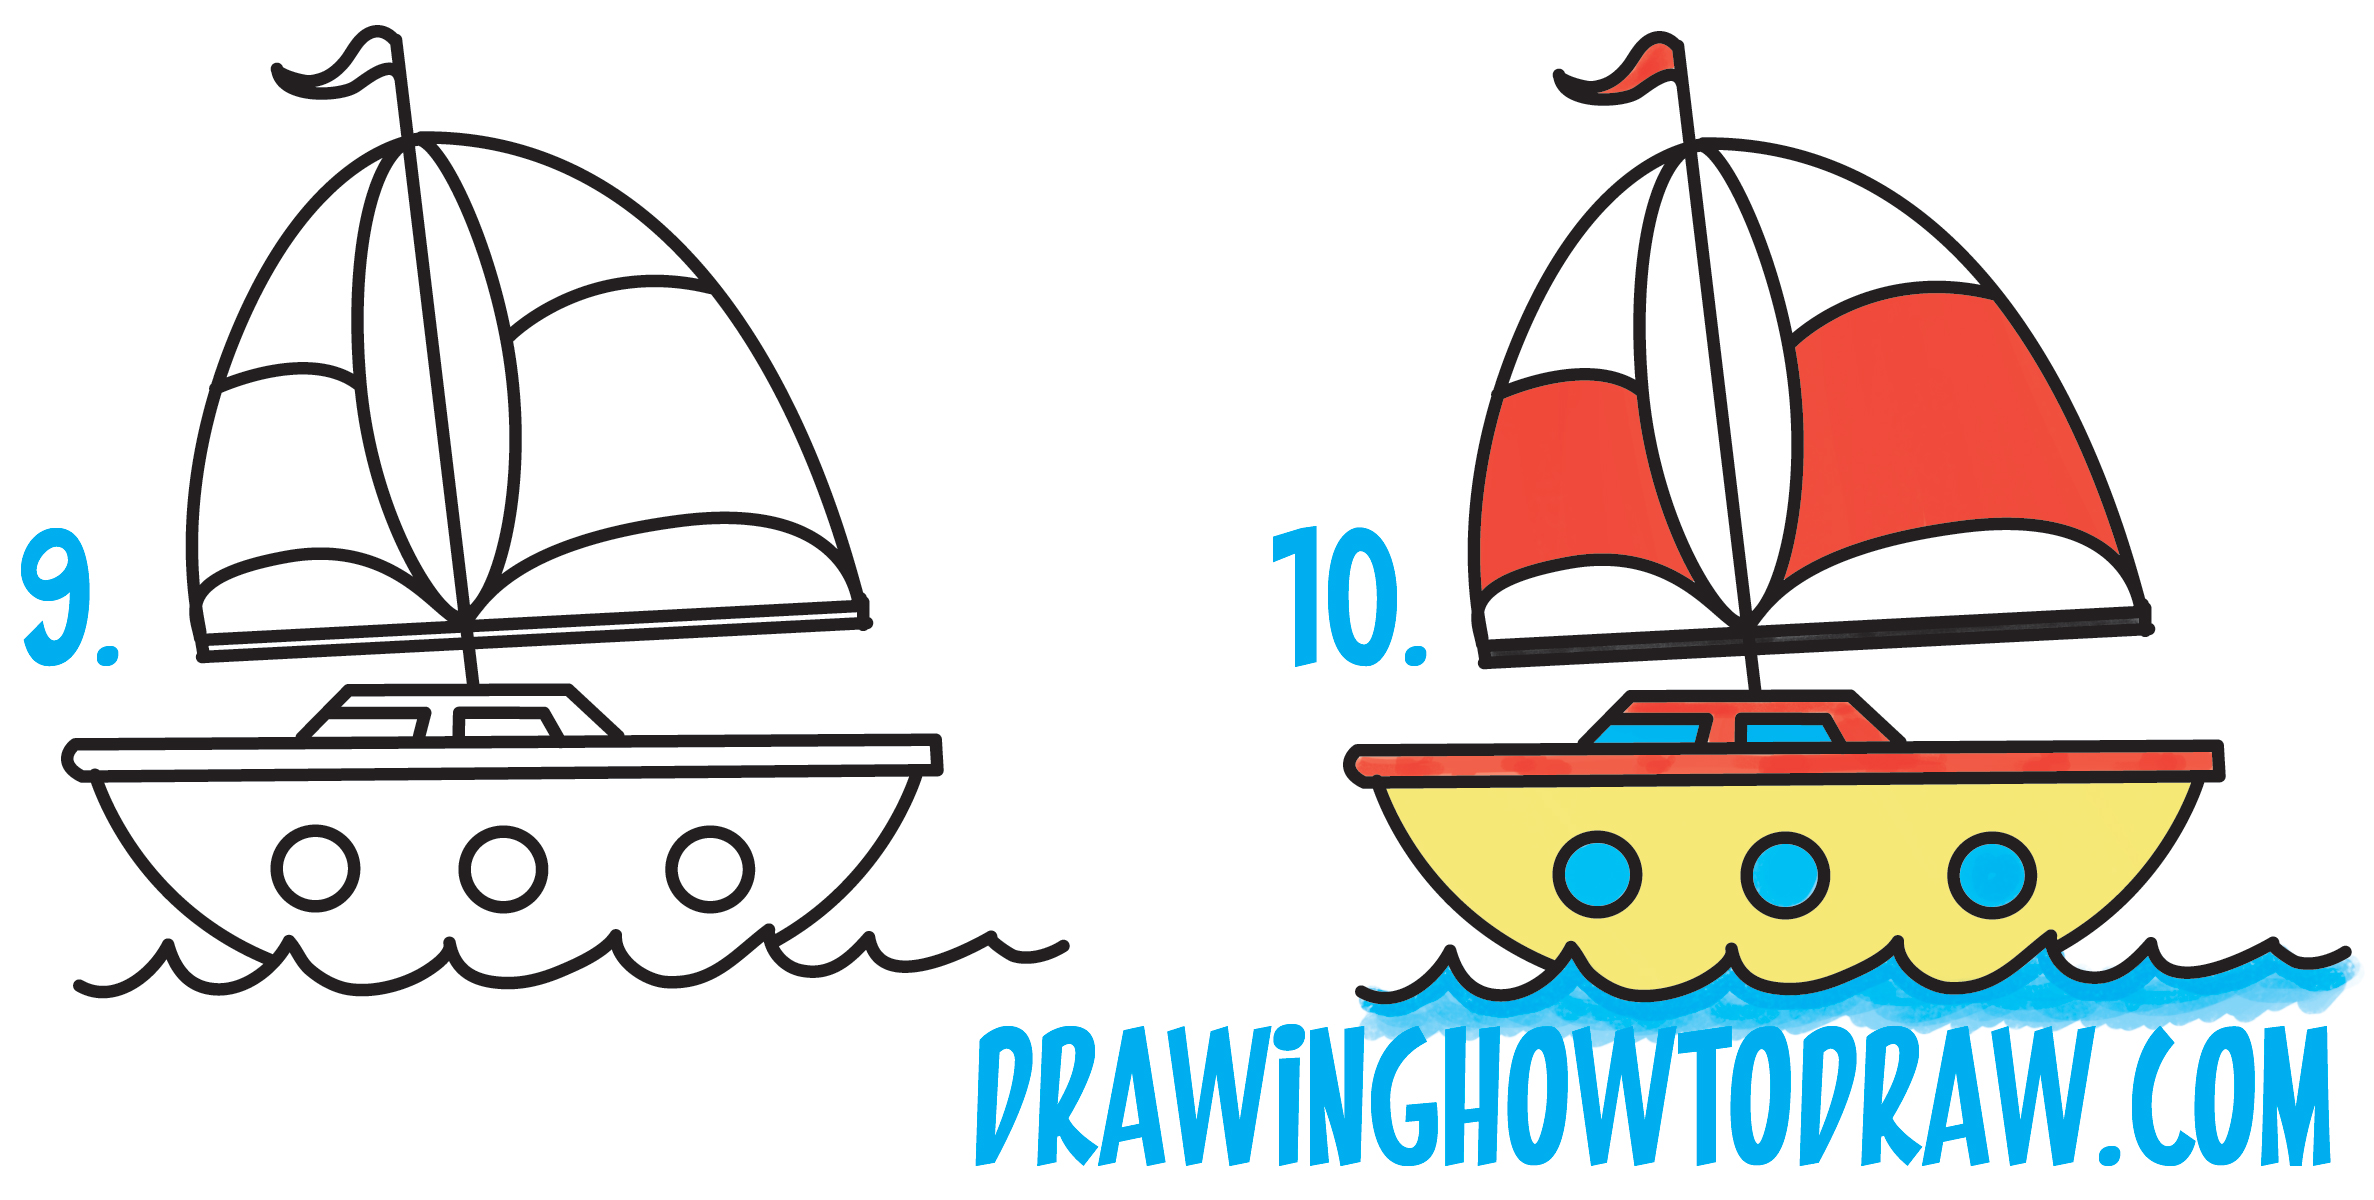 Boating clipart easy. Simple boat drawing at